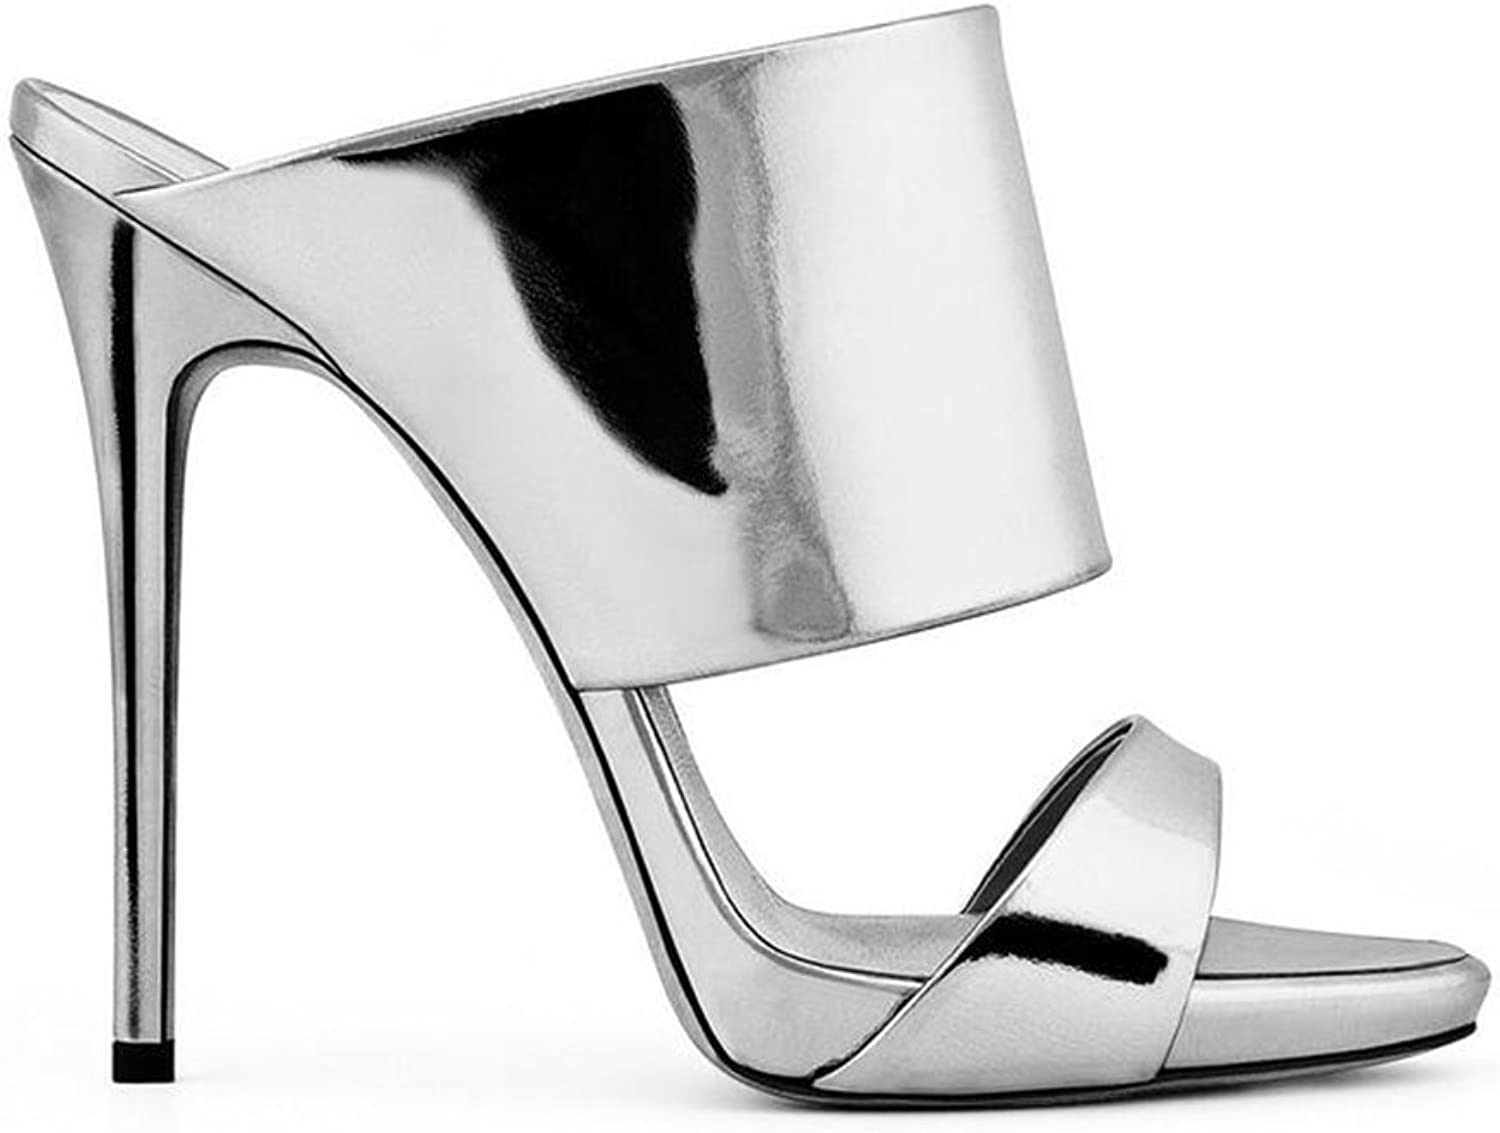 Jiang Womens's shoes Ladies High-Heeled Sandals Shine High-Heeled Luxury Silver Champagne Sandals